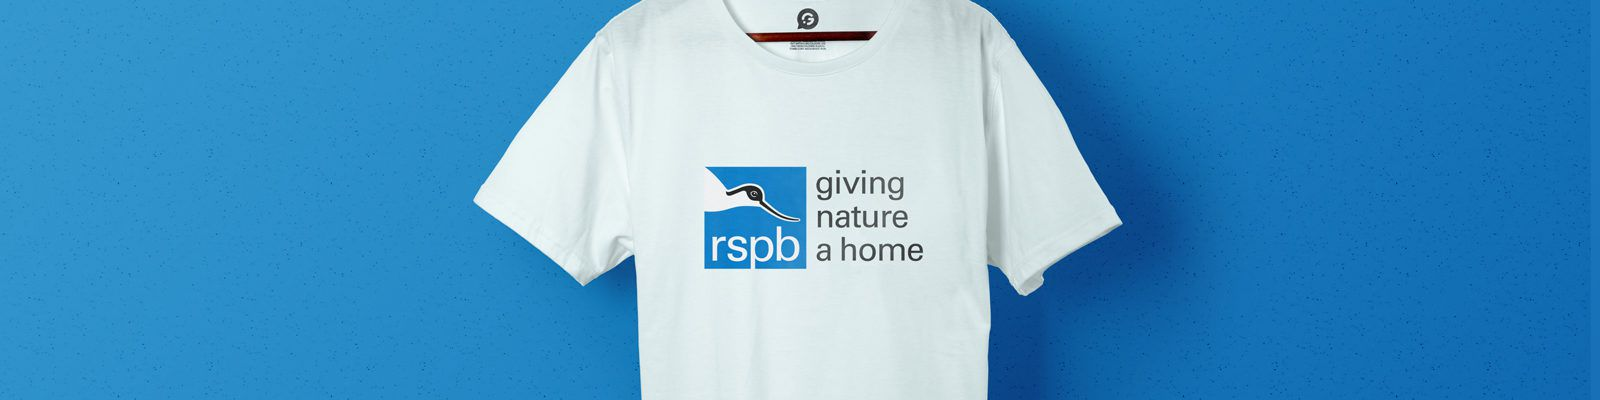 Printed Workwear for RSPB Events - Header Image